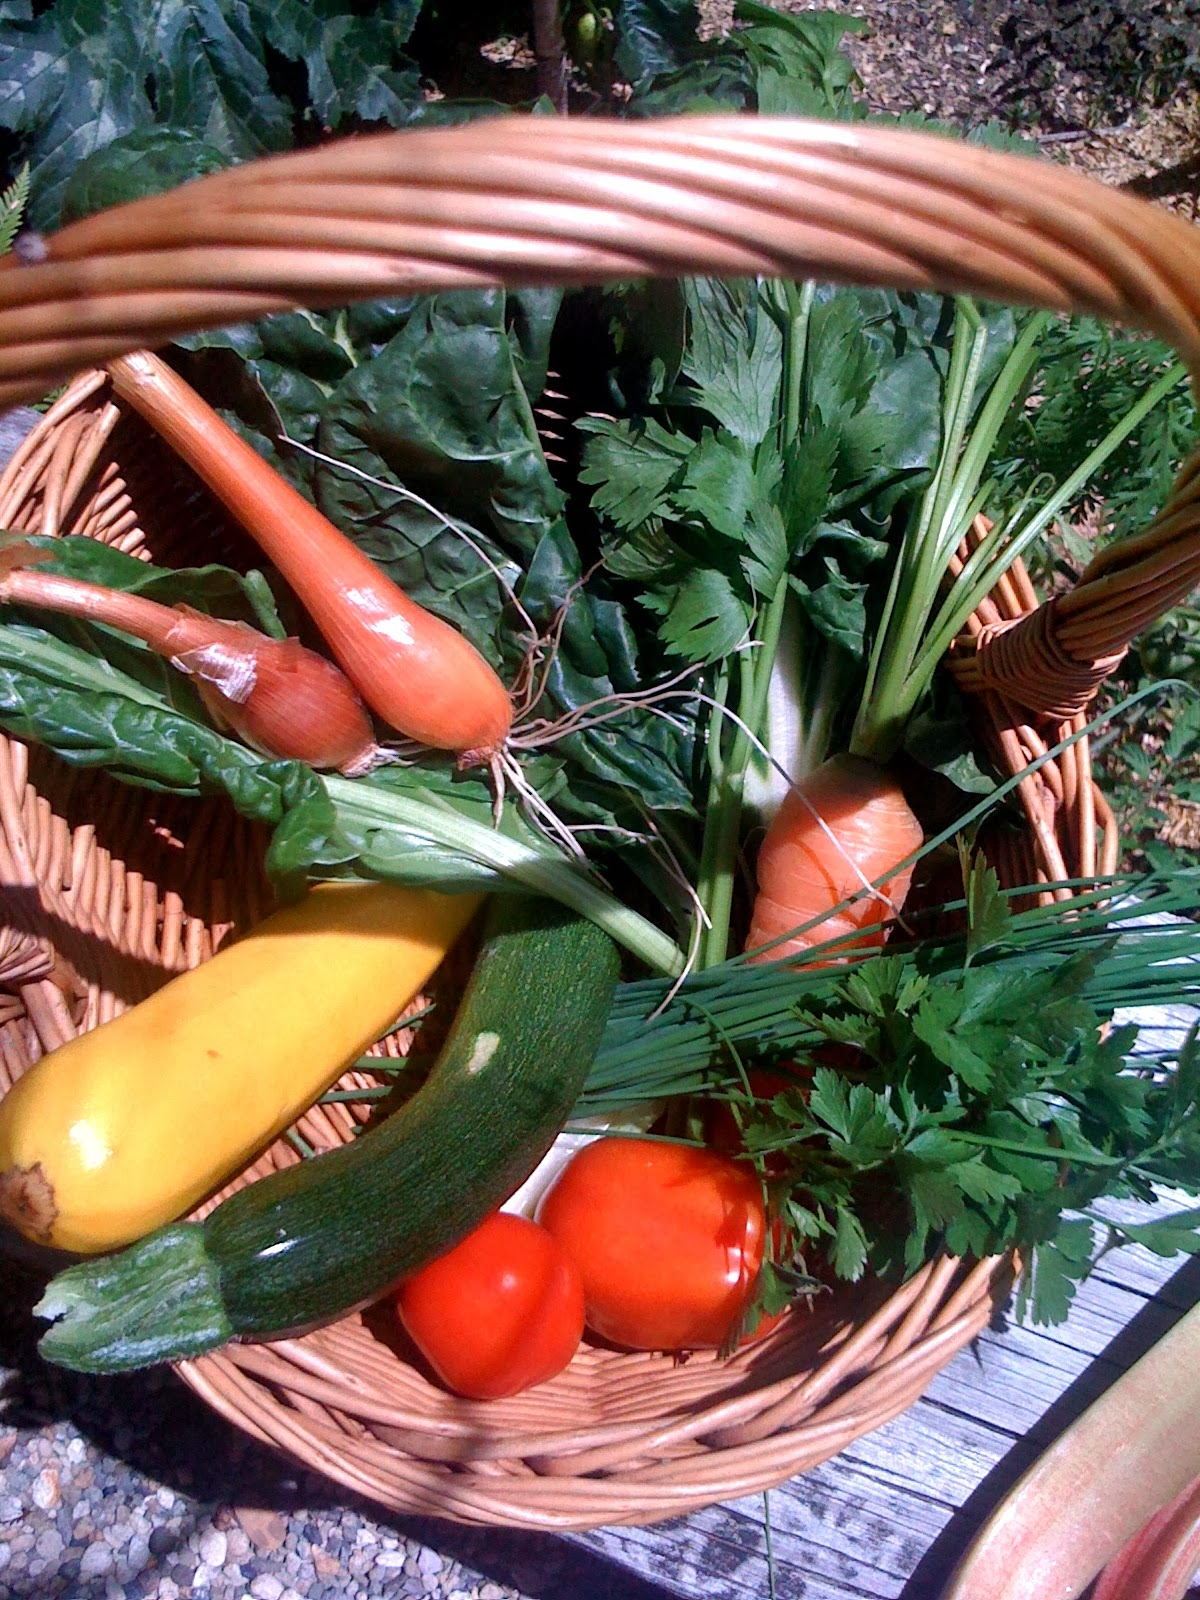 a basket of veggies from the garden to make soup